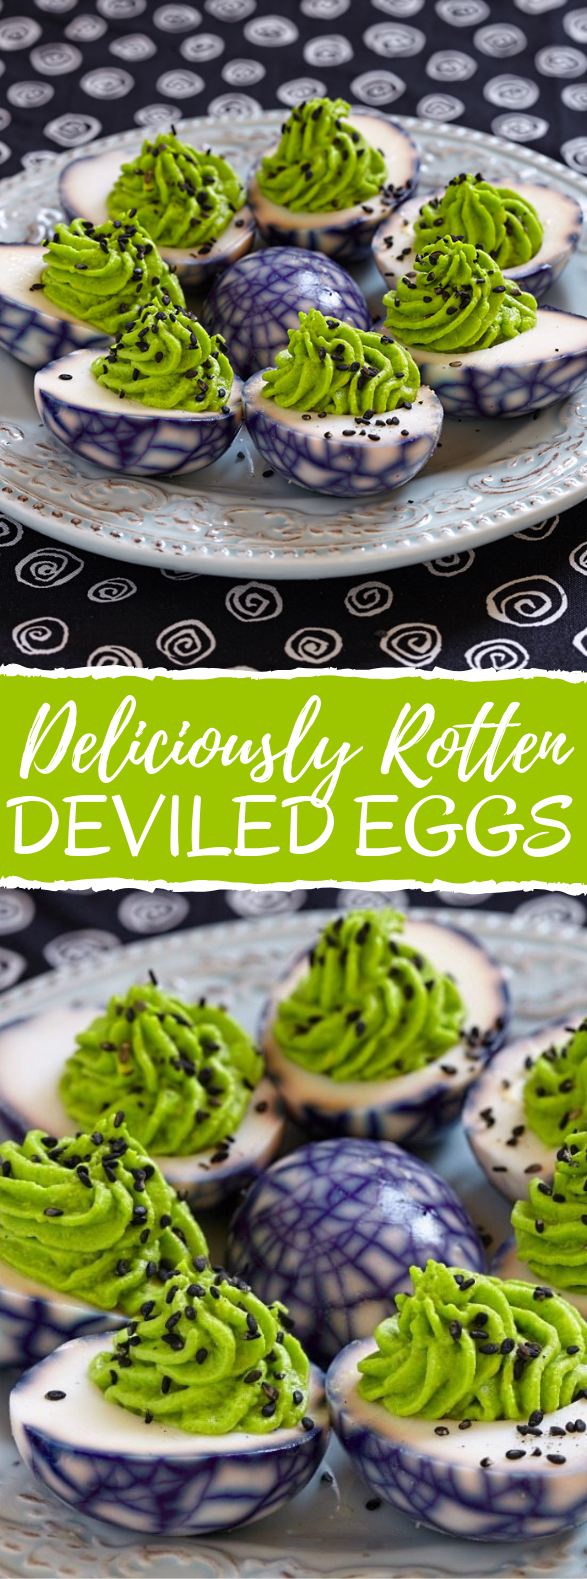 Deliciously Rotten Deviled Eggs #appetizers #partyrecipe